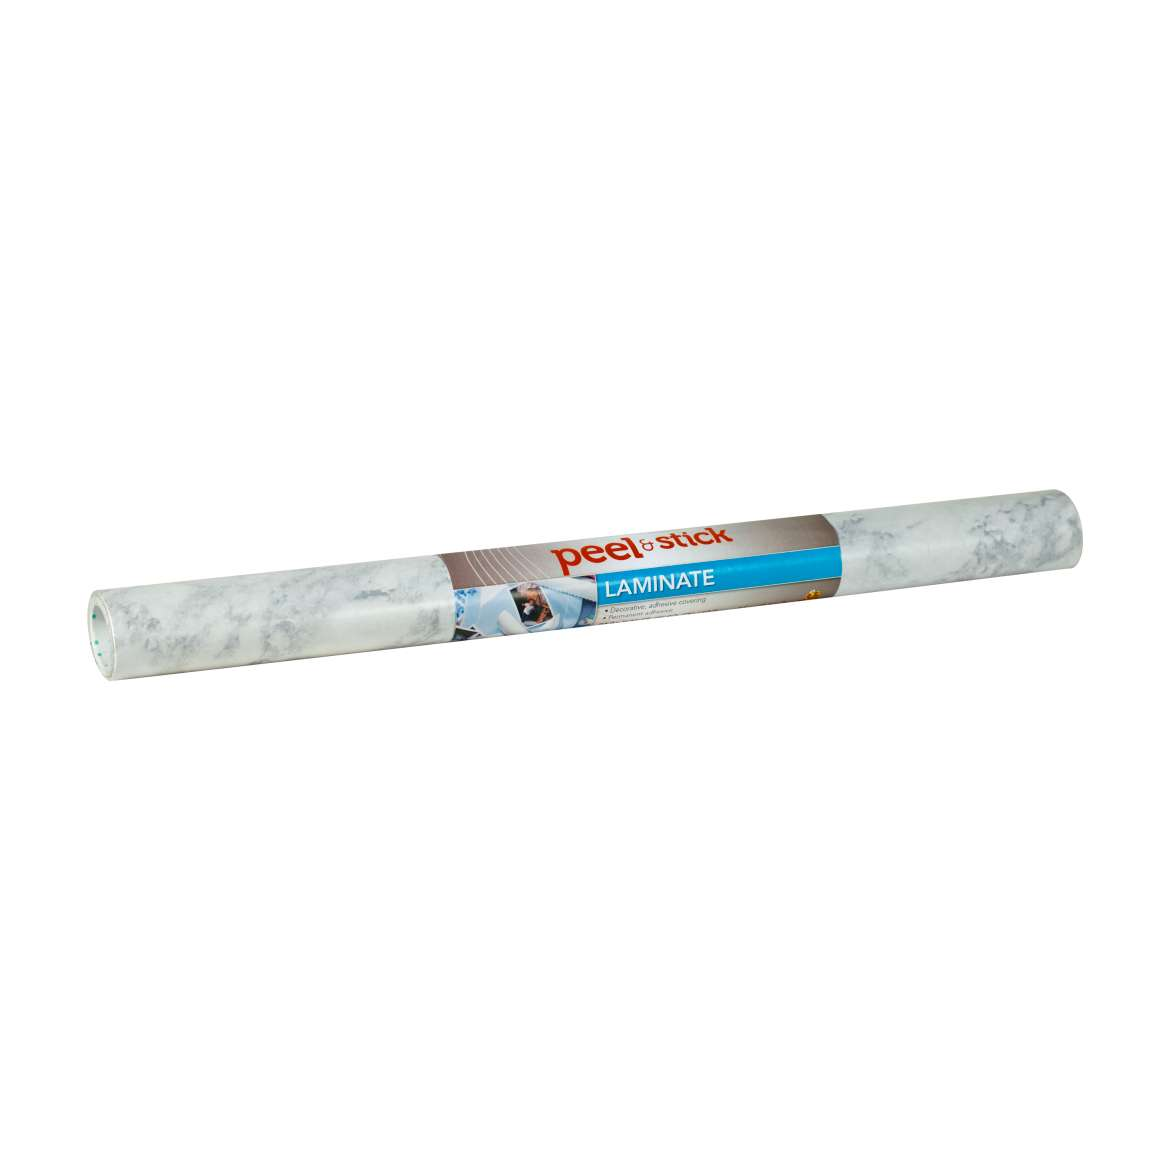 Duck® Brand Peel & Stick Adhesive Laminate - White Marble, 20 in. x 15 ft. Image